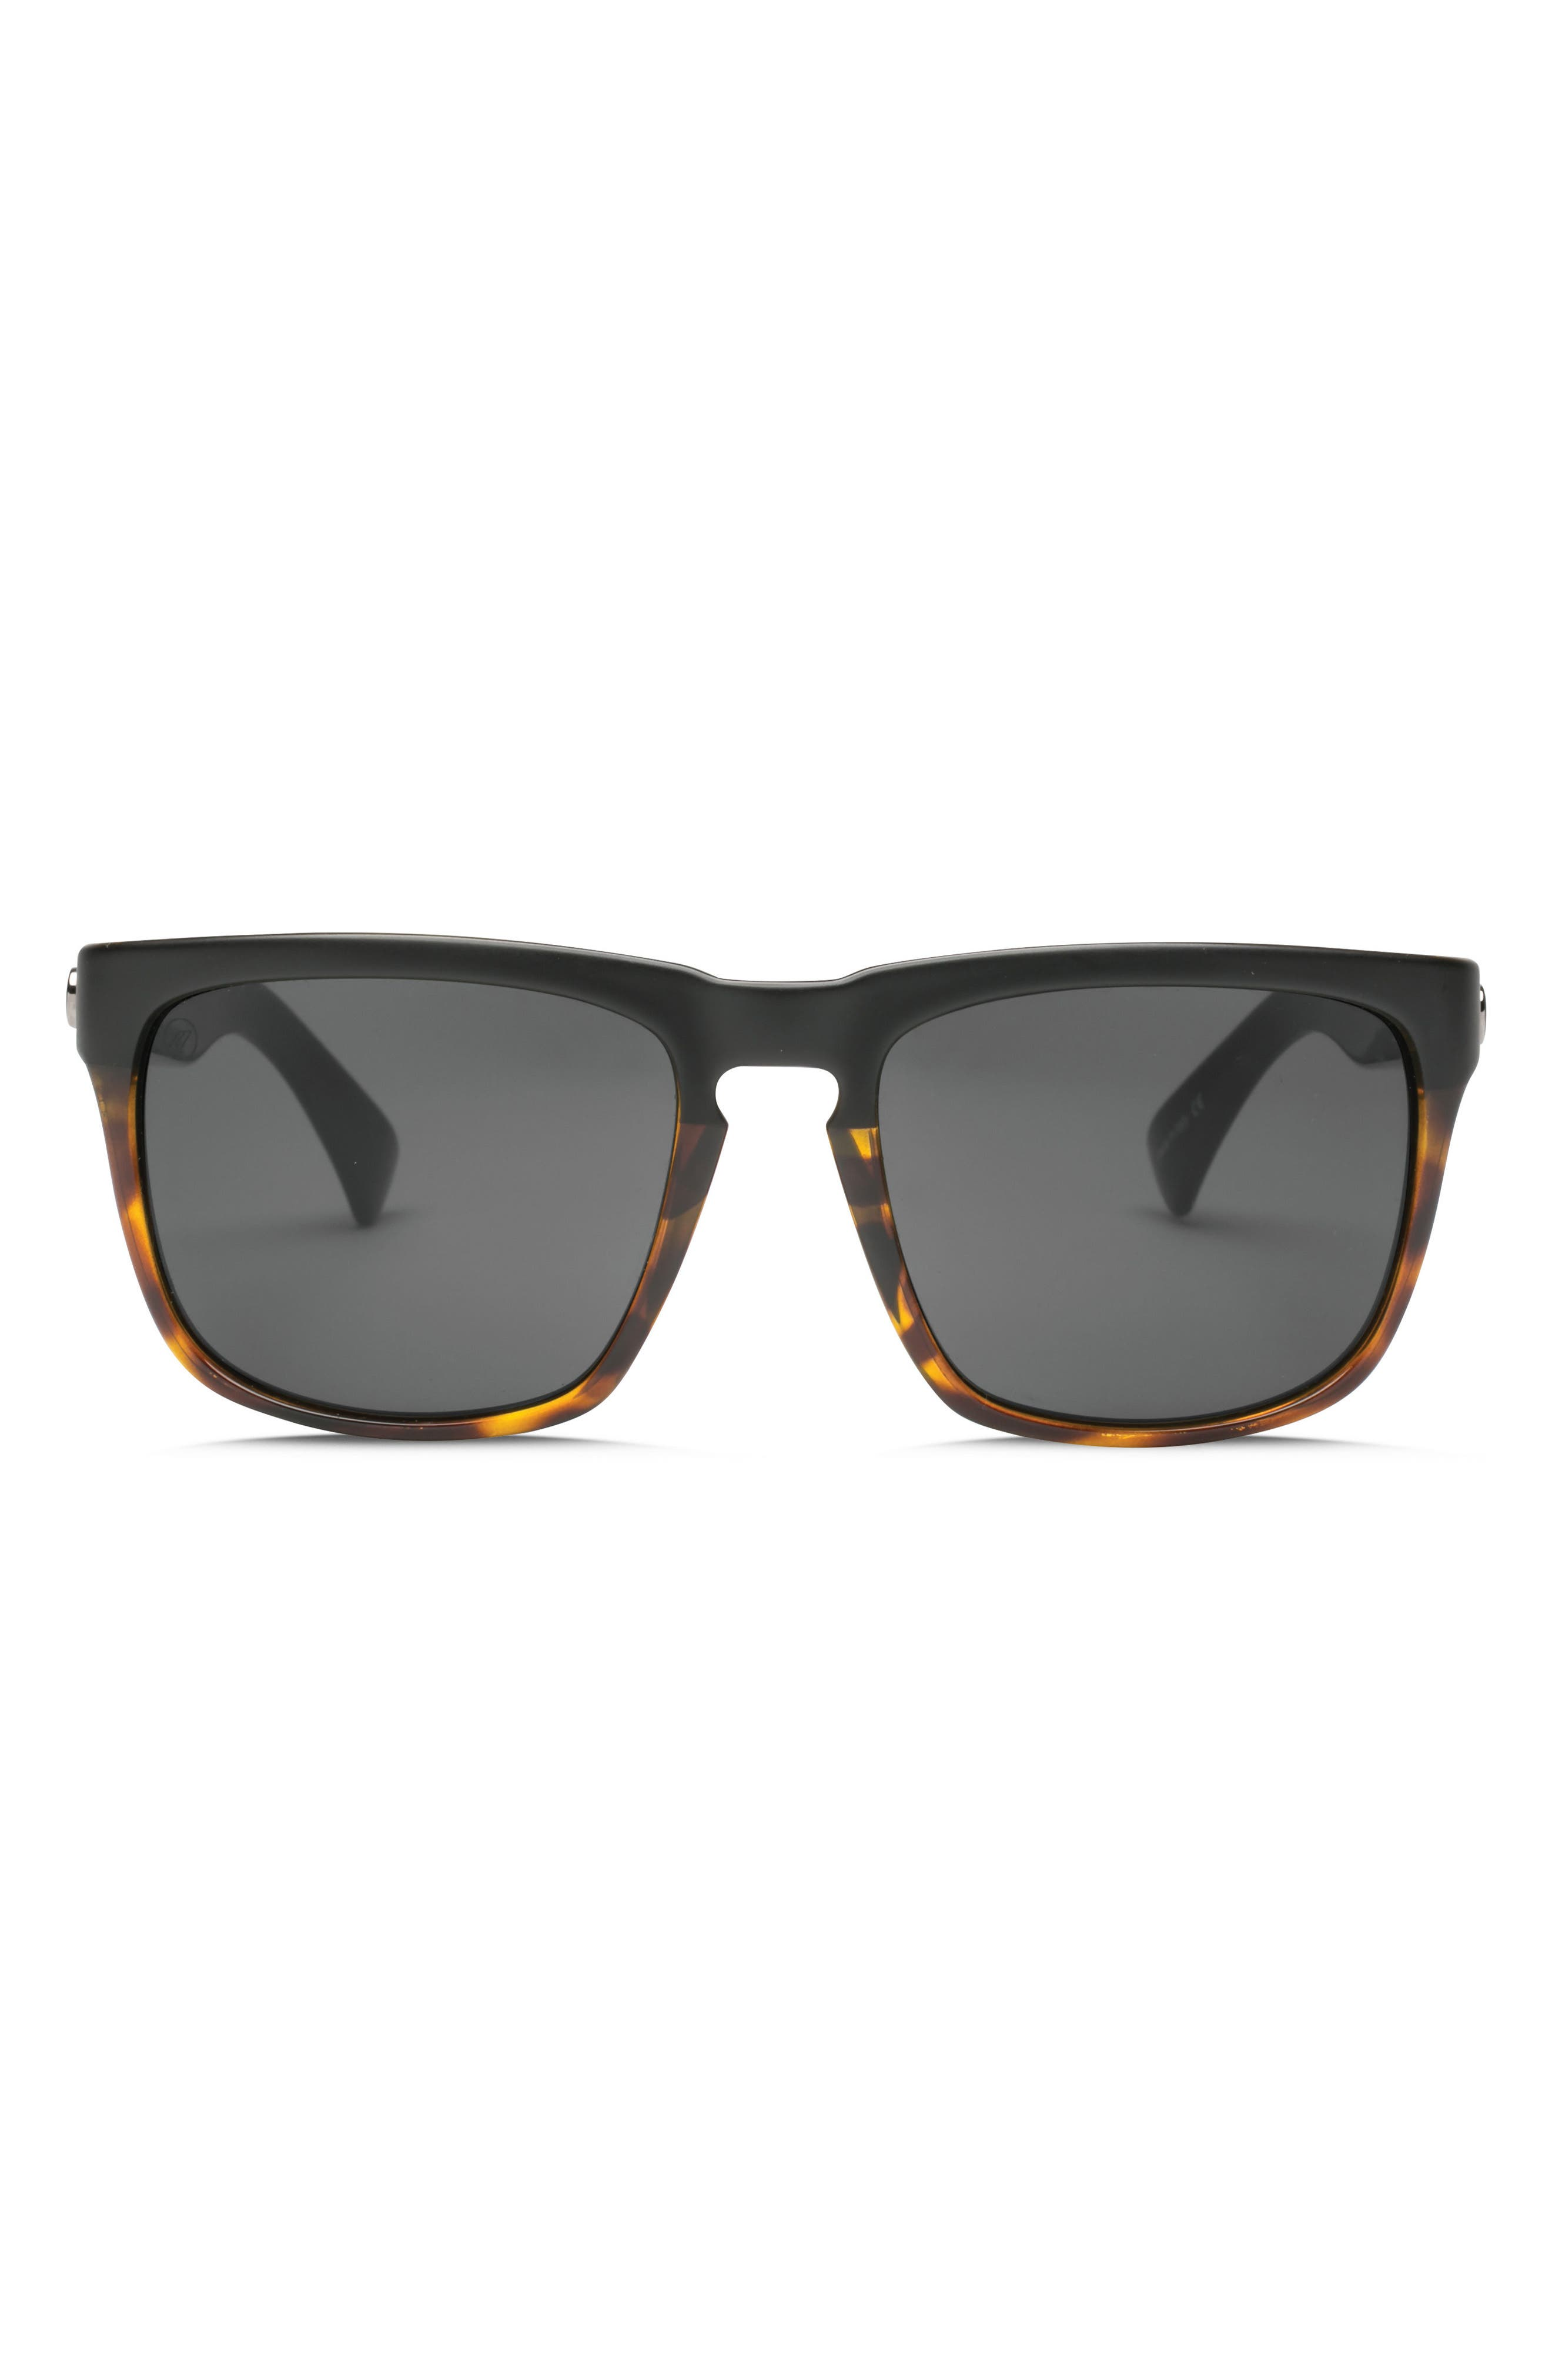 Knoxville XL 61mm Sunglasses,                         Main,                         color, 200